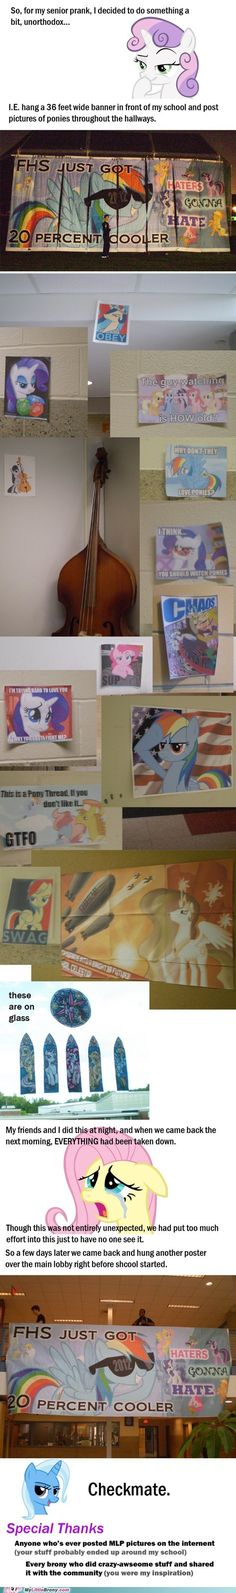 my little pony, friendship is magic, brony - Pranking Done Right hahhahahahahaha